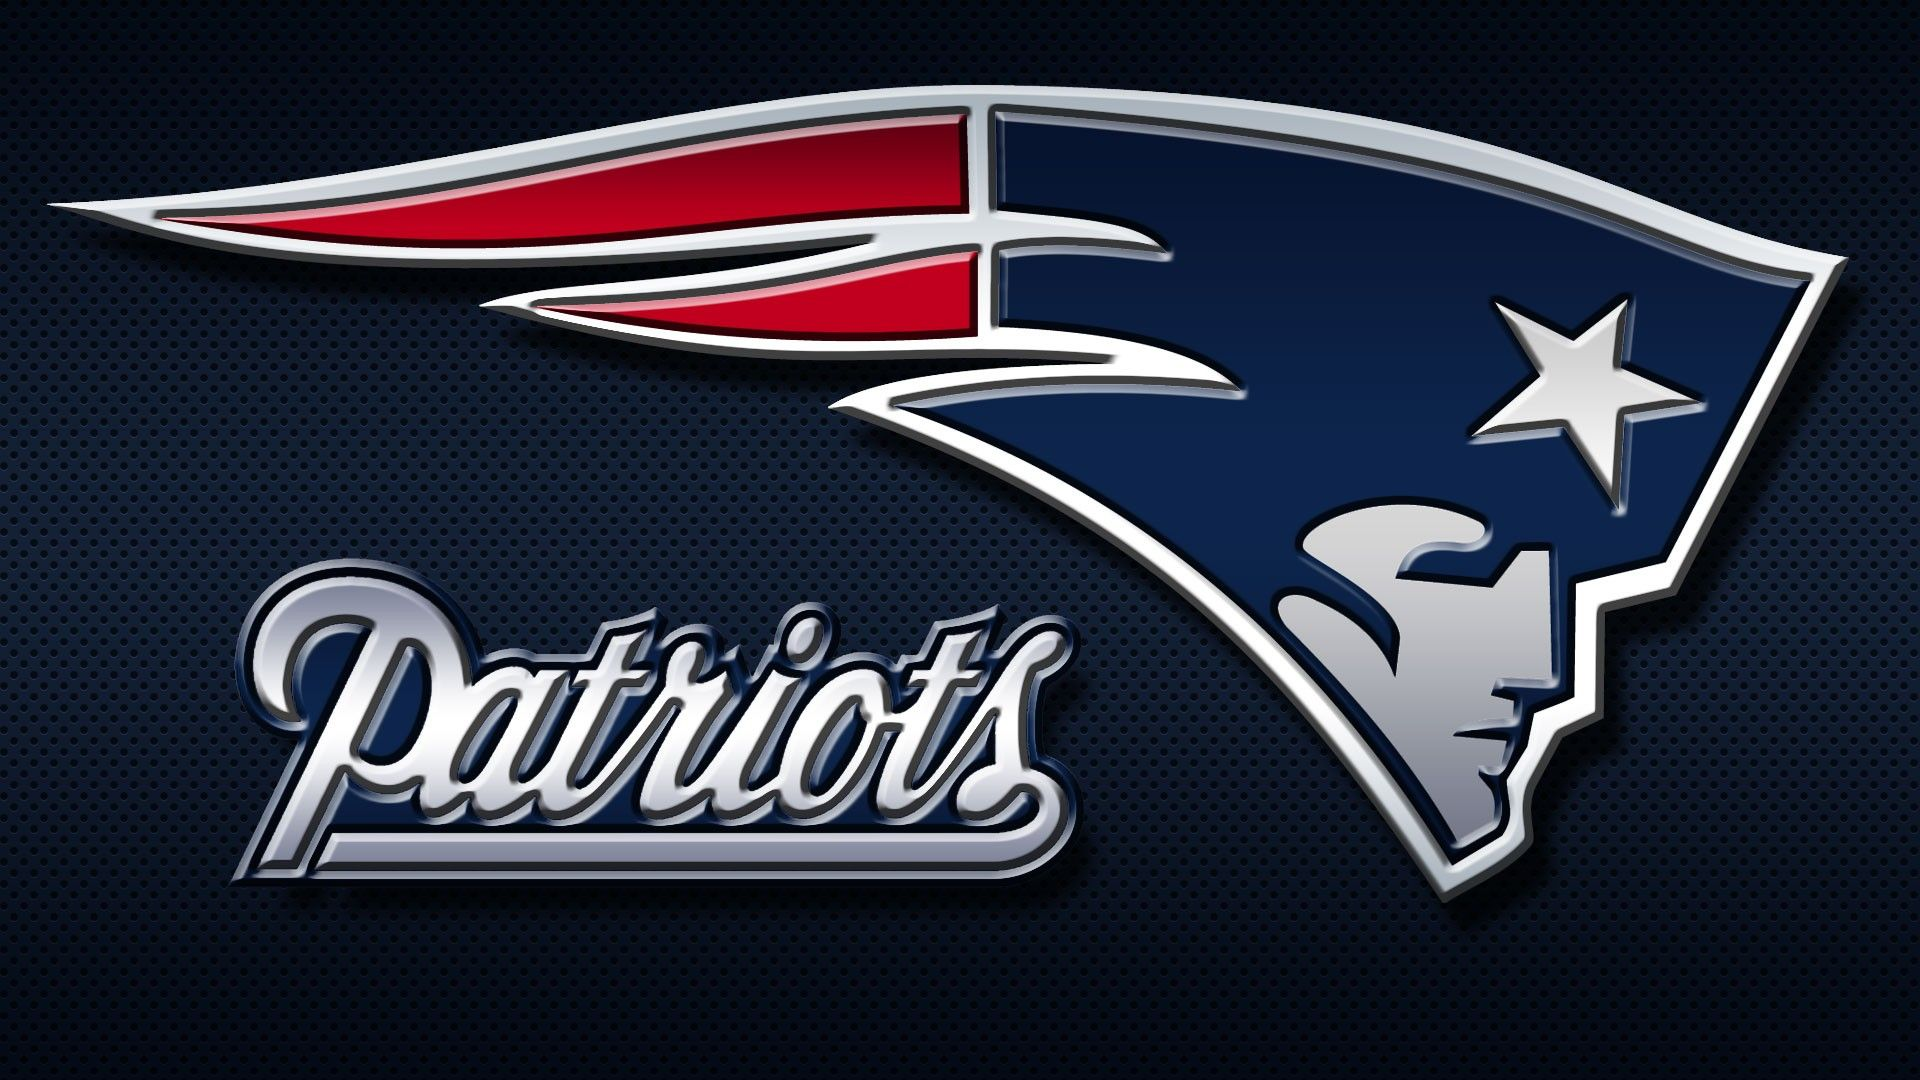 Hd New England Patriots Wallpapers 2021 Nfl Football Wallpapers New England Patriots Wallpaper Nfl Football Wallpaper Nfl New England Patriots